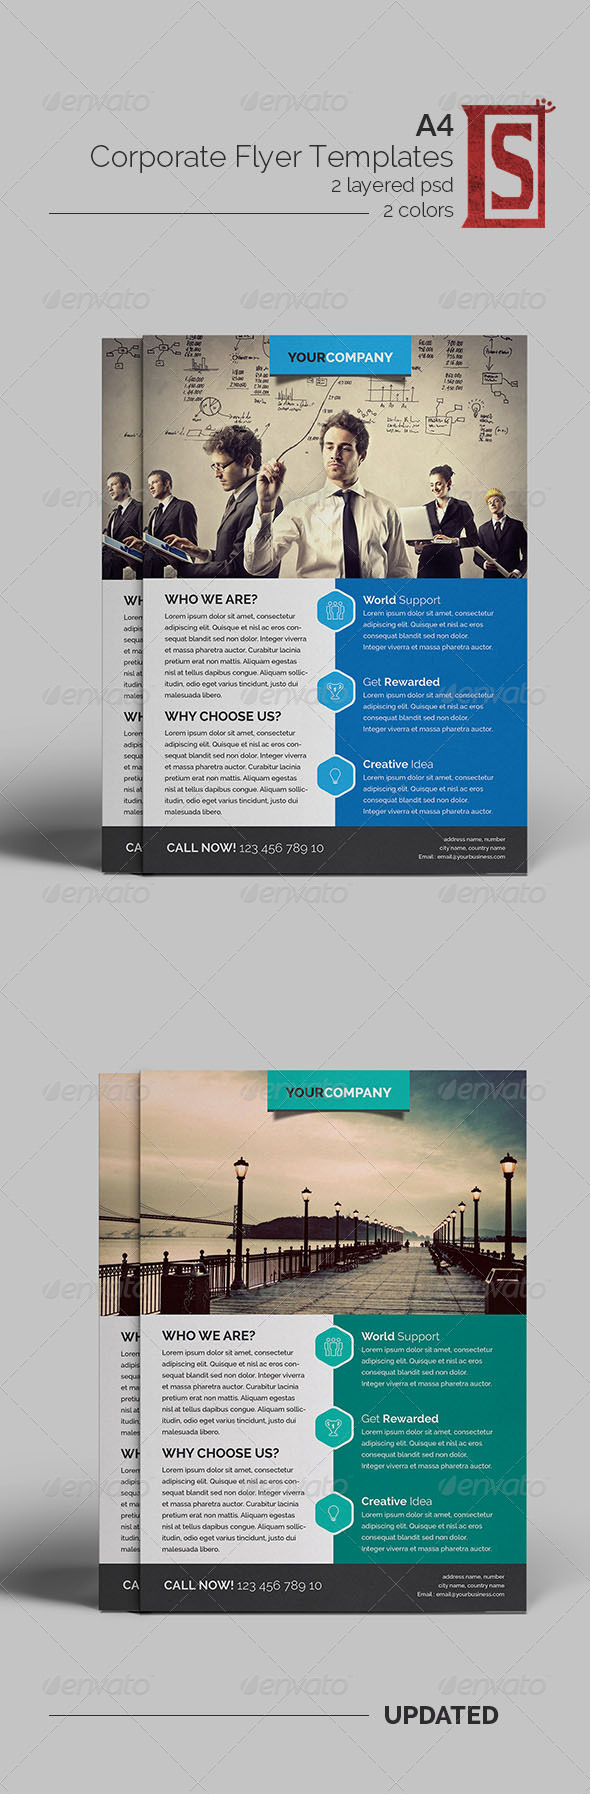 GraphicRiver Corporate Flyer Template 8174786